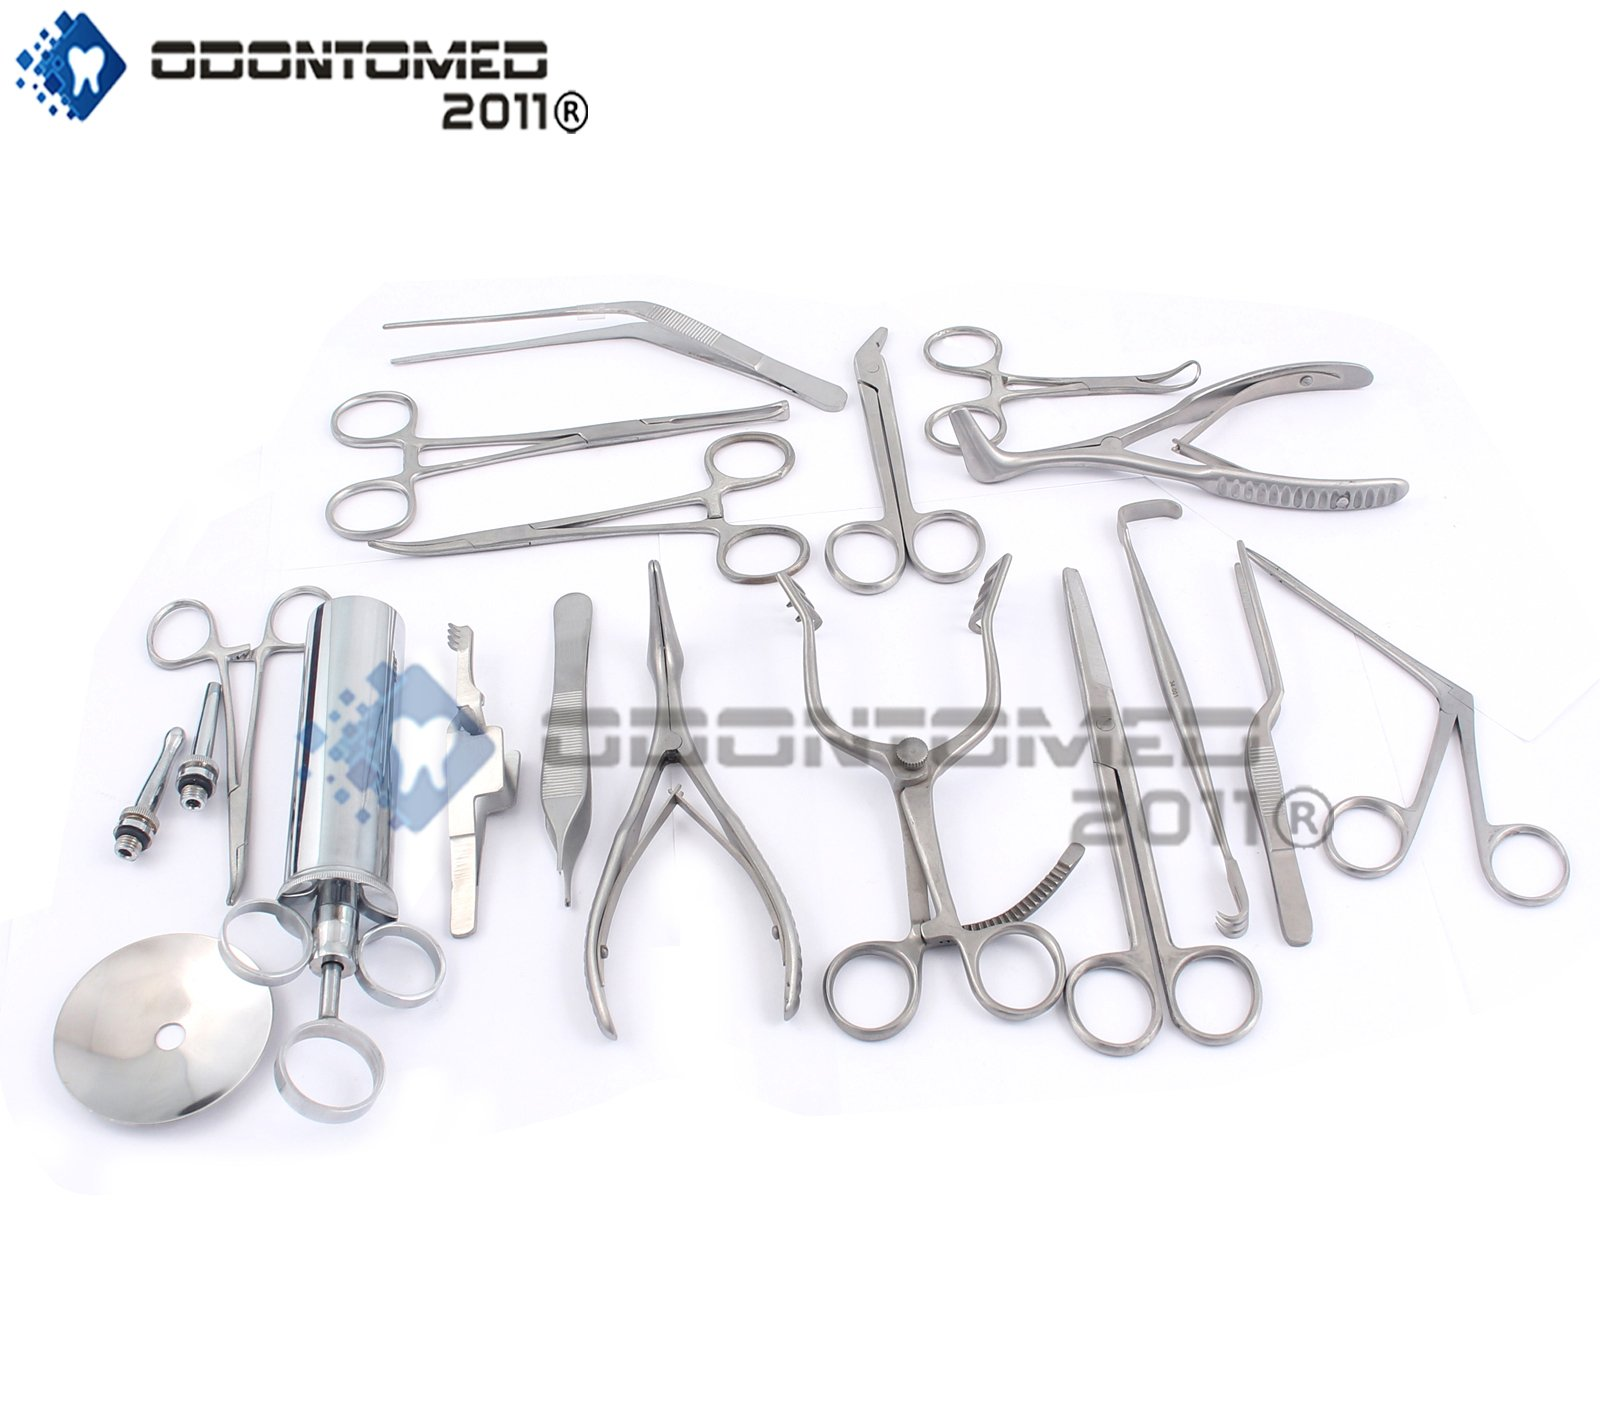 OdontoMed2011 NEW SET OF 16 PCS ( ENT ) EAR AND NOSE INSTRUMENTS FORCEPS VIENNA NASAL SPECULUM HARTMAN ALLIGATOR ! EAR SYRINGE SCISSORS ODM by ODONTOMED